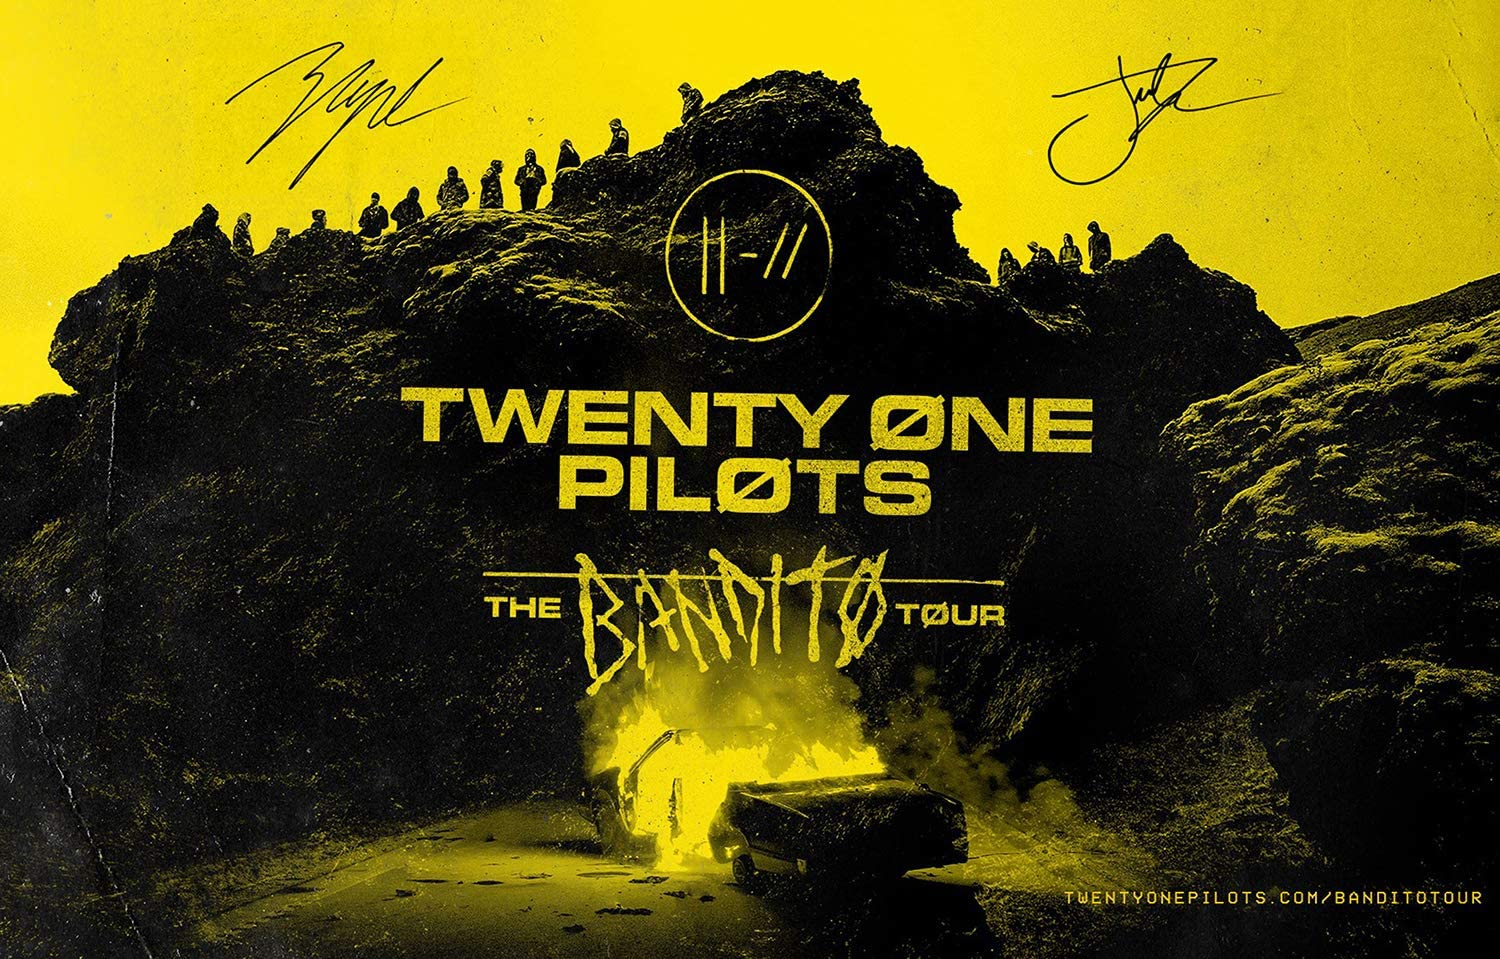 Amazon Com Rock Poster 21 The Bandito Tour Signed Posters And Prints Unframed Wall Art Gifts Decor 16x25 Posters Prints